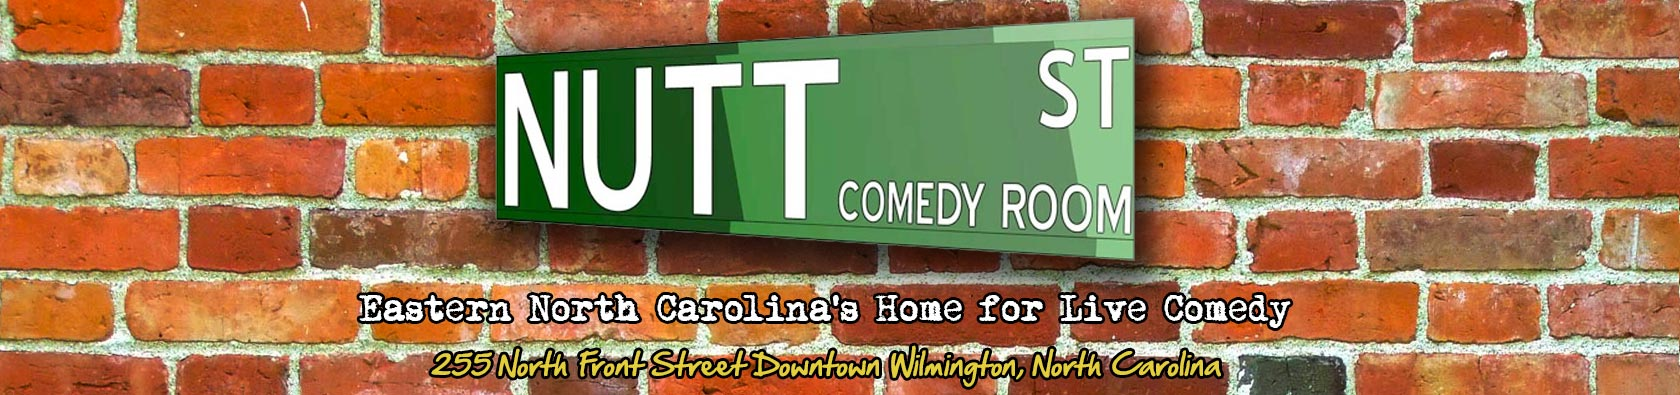 Nutt Street Comedy Room Open Mic @ Nutt Street Comedy Room | Wilmington | North Carolina | United States